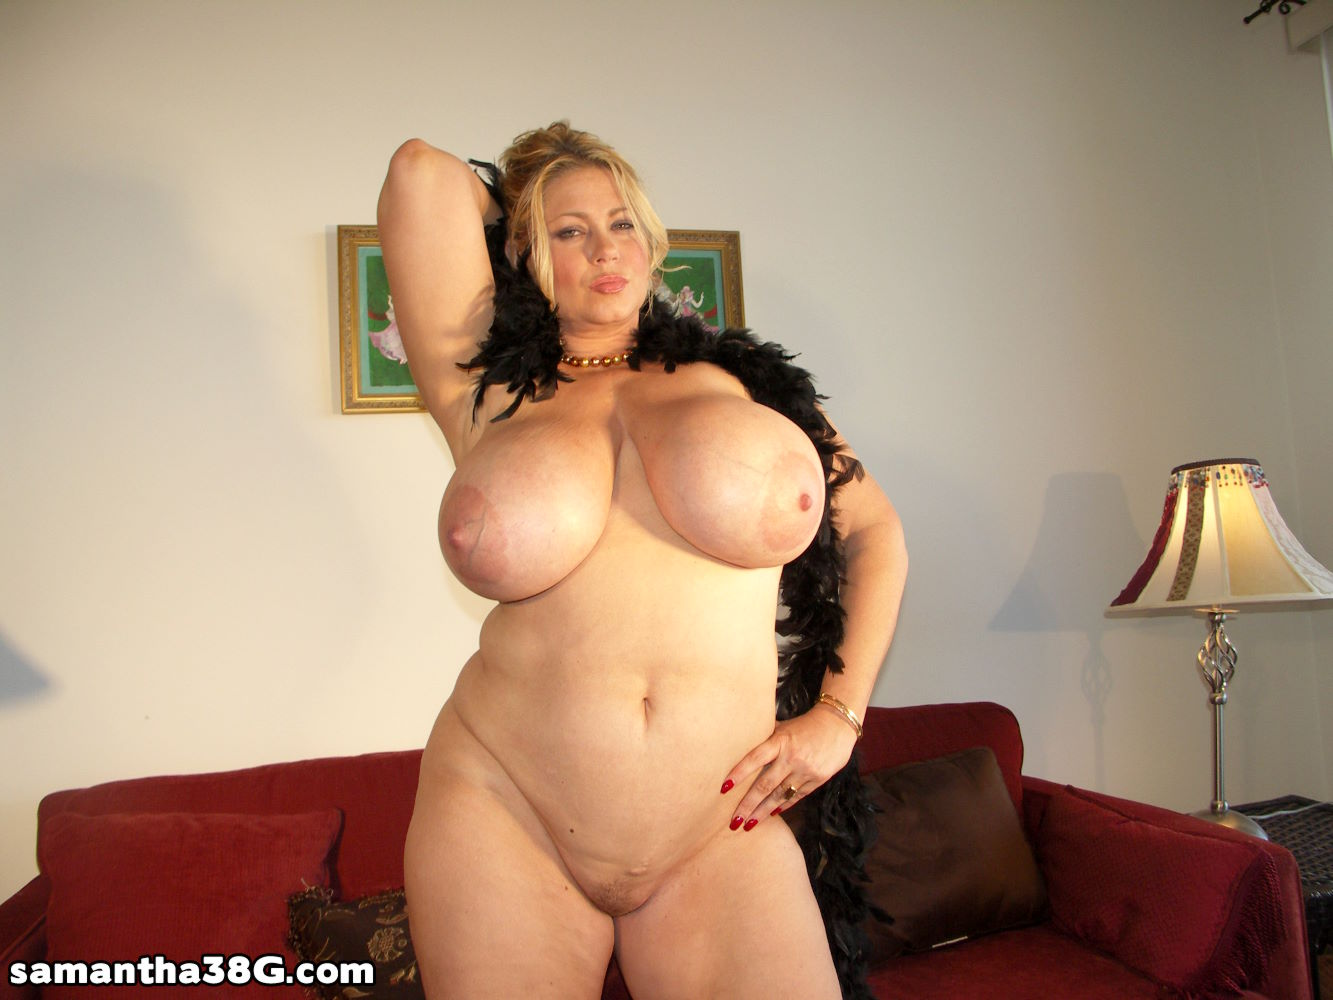 Big tit milf videos